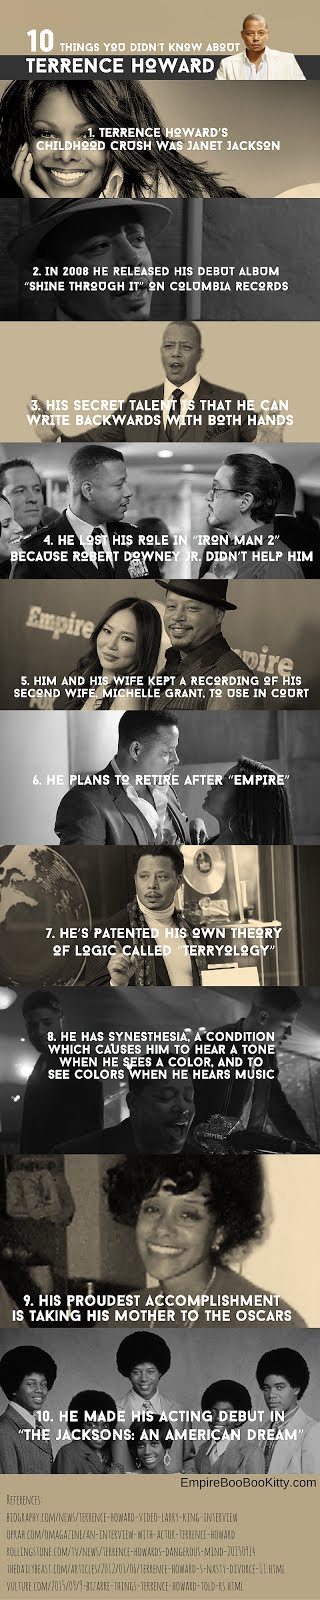 Terrence Howard Facts